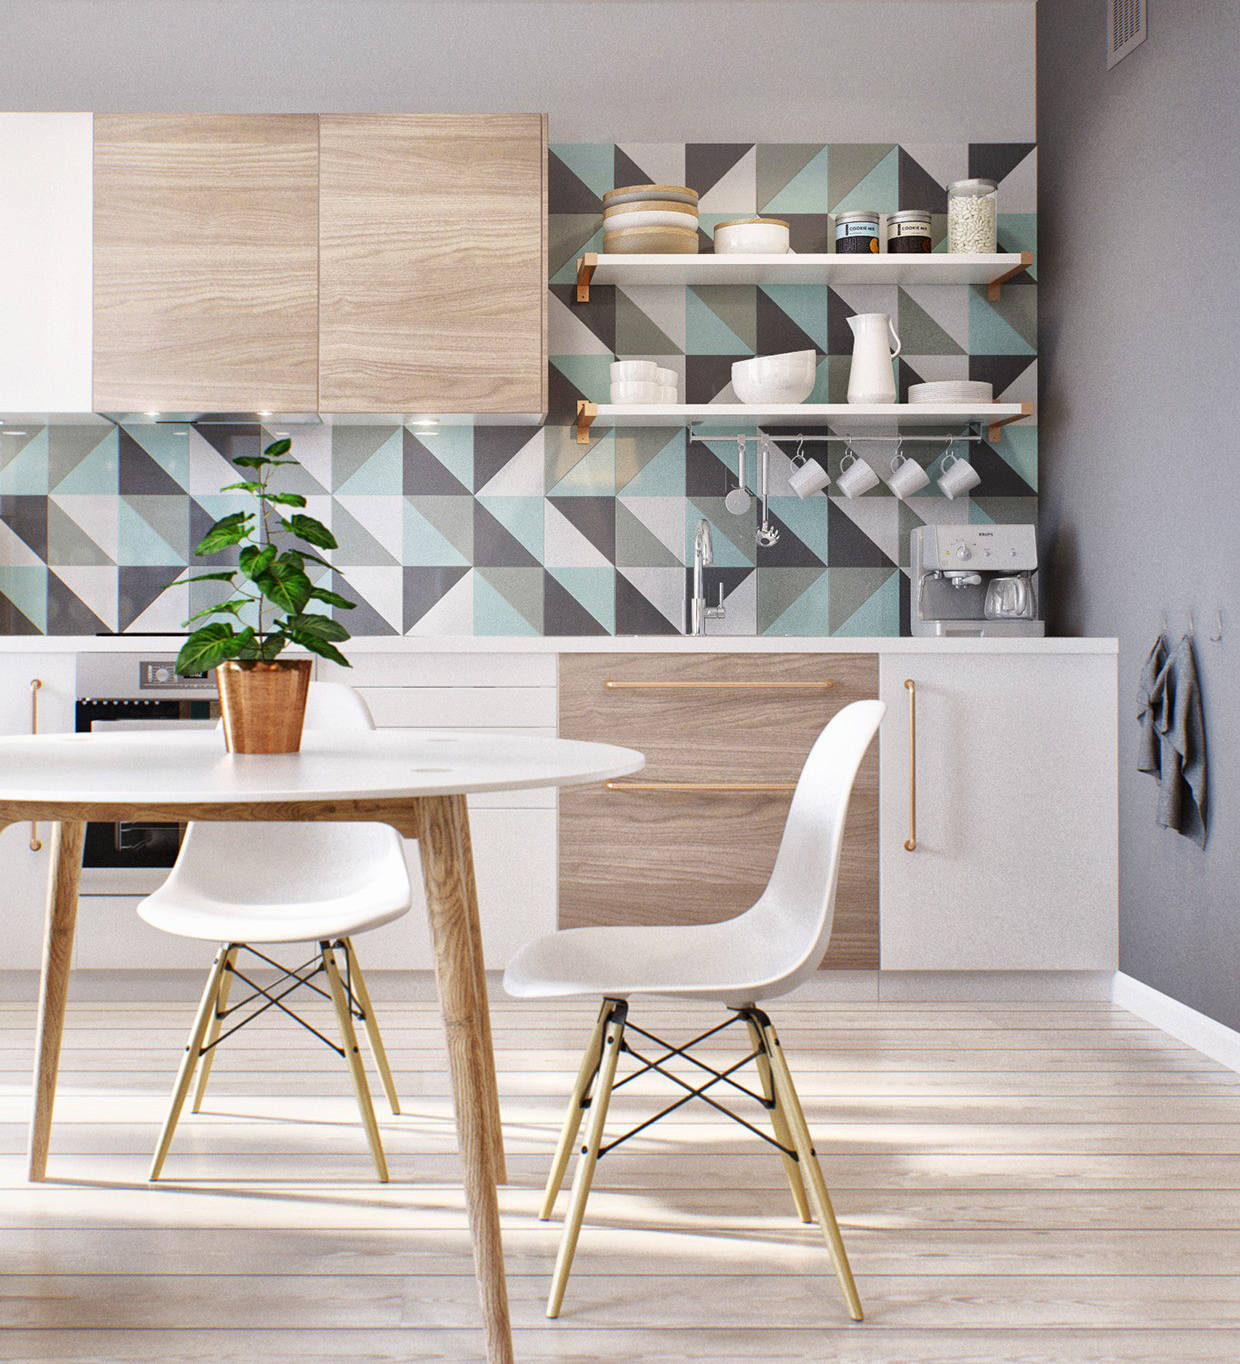 Geometric Tile Russian Studio Apartment With Pastel Geometric Pattern Tile And Minimalist Cabinets Triptod